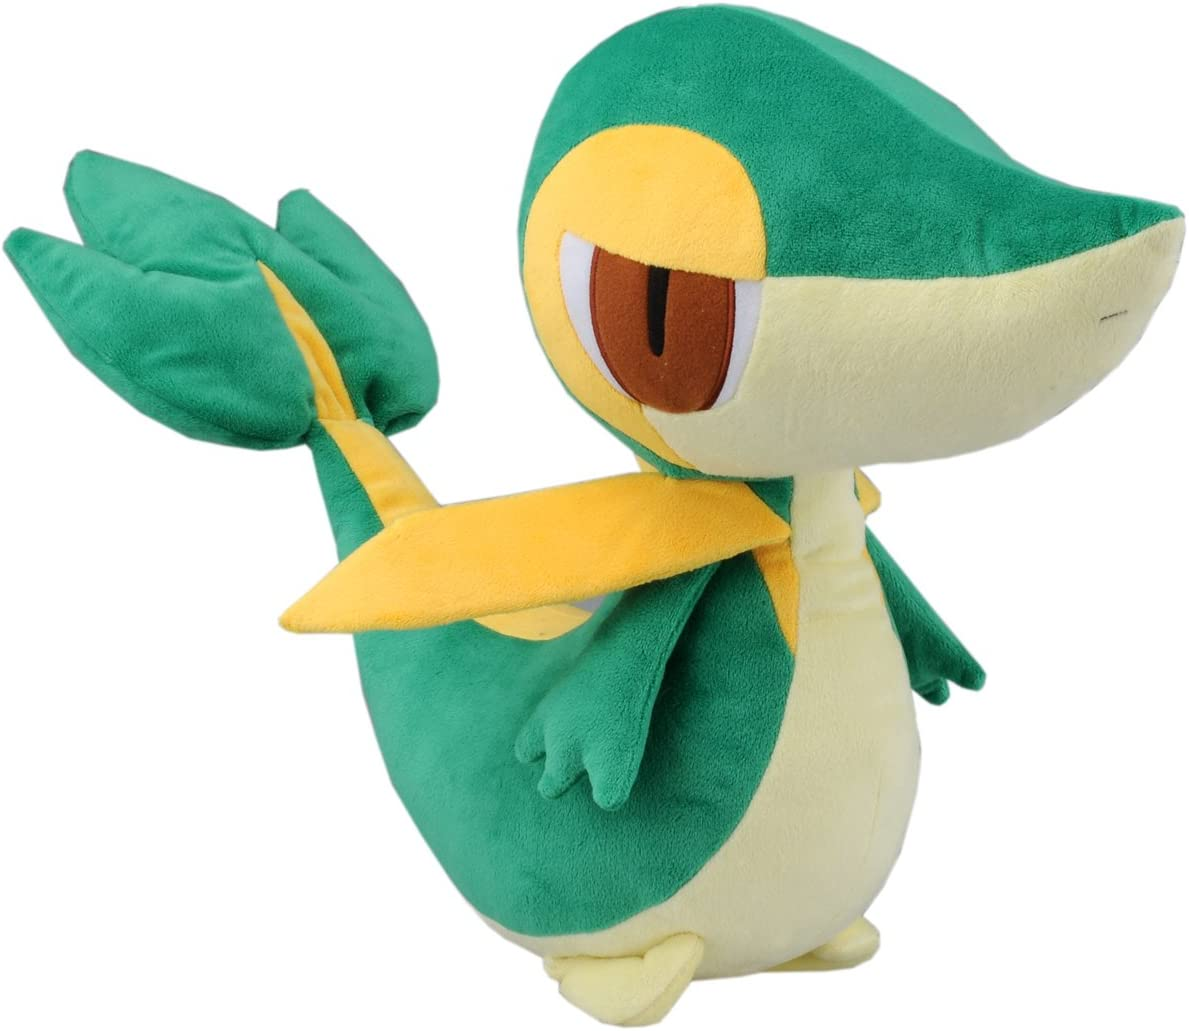 "Japanese Import Large 12/"" Tsutarja Snivy Pokemon Black /& White Plush Toy"